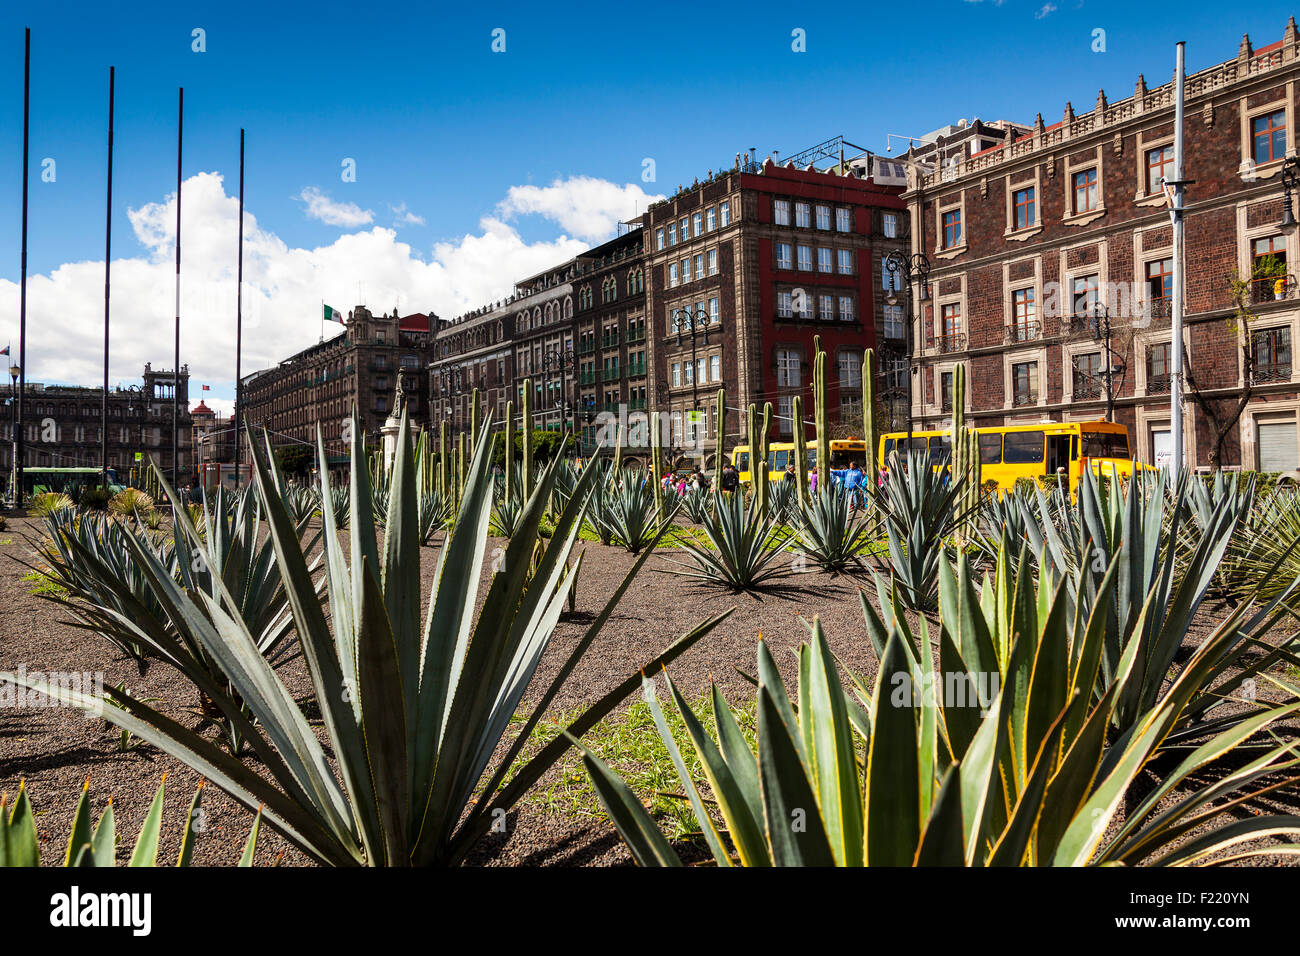 Agave garden Zocalo square Mexico City Federal District DF North America - Stock Image